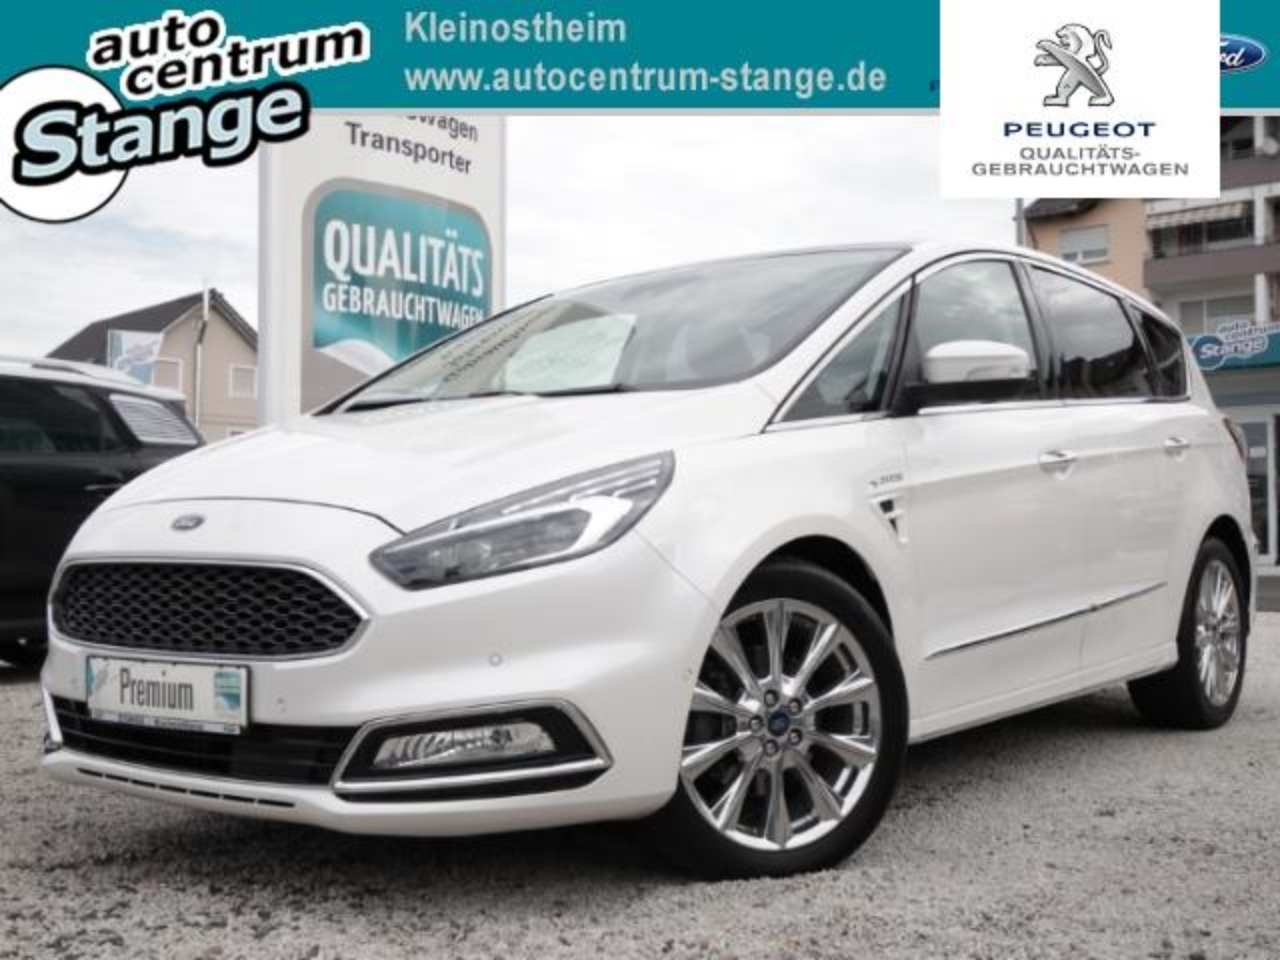 Ford S-Max Vignale Ruckfahrkam. Panorama Beheizb. Frontsch.